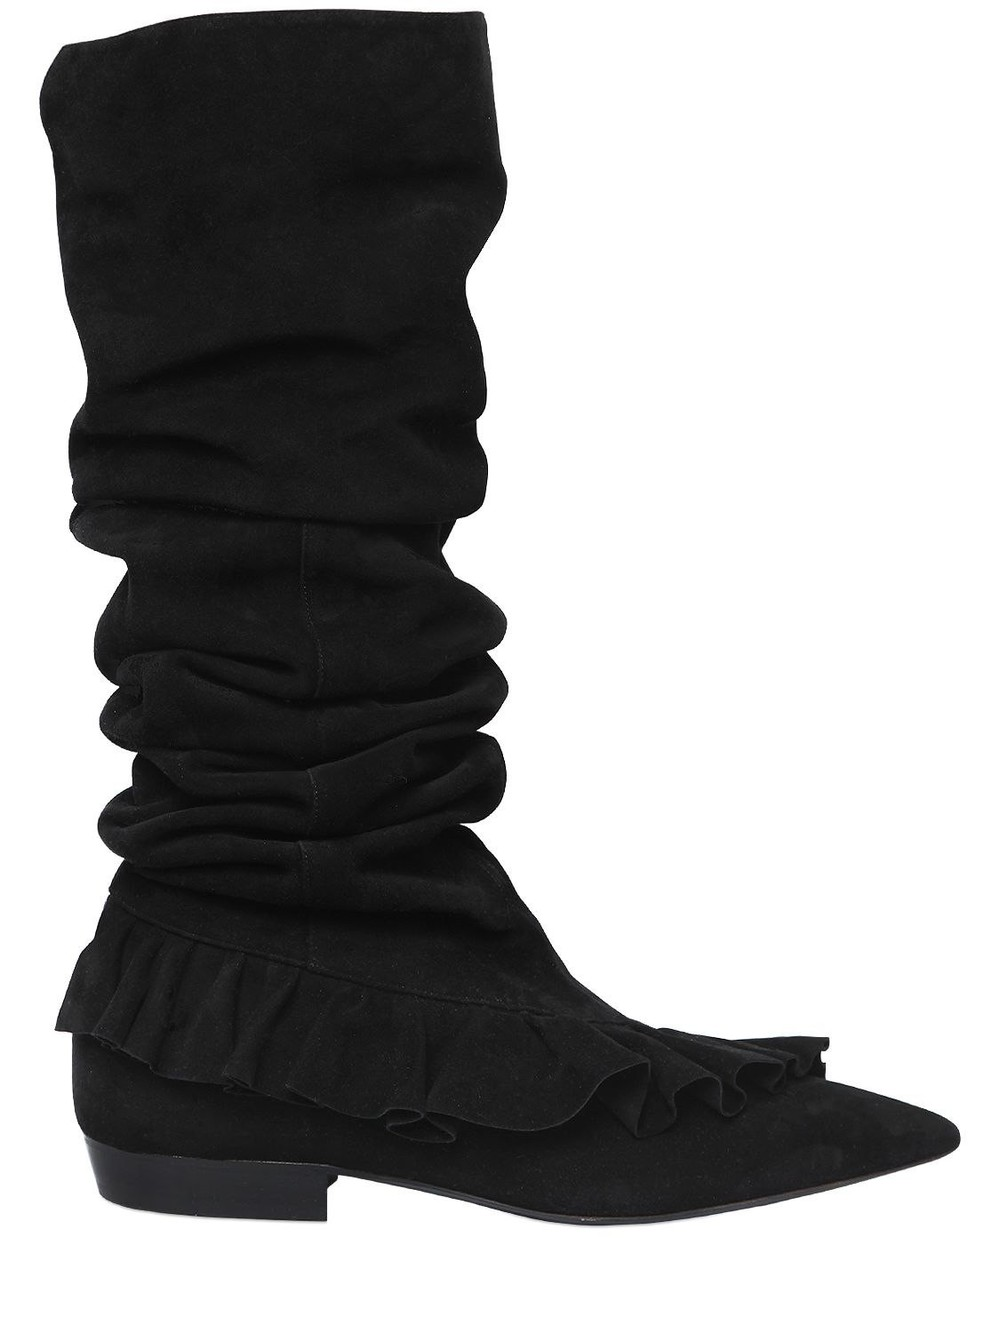 J.W.ANDERSON 10mm Ruffle Suede Boots in black